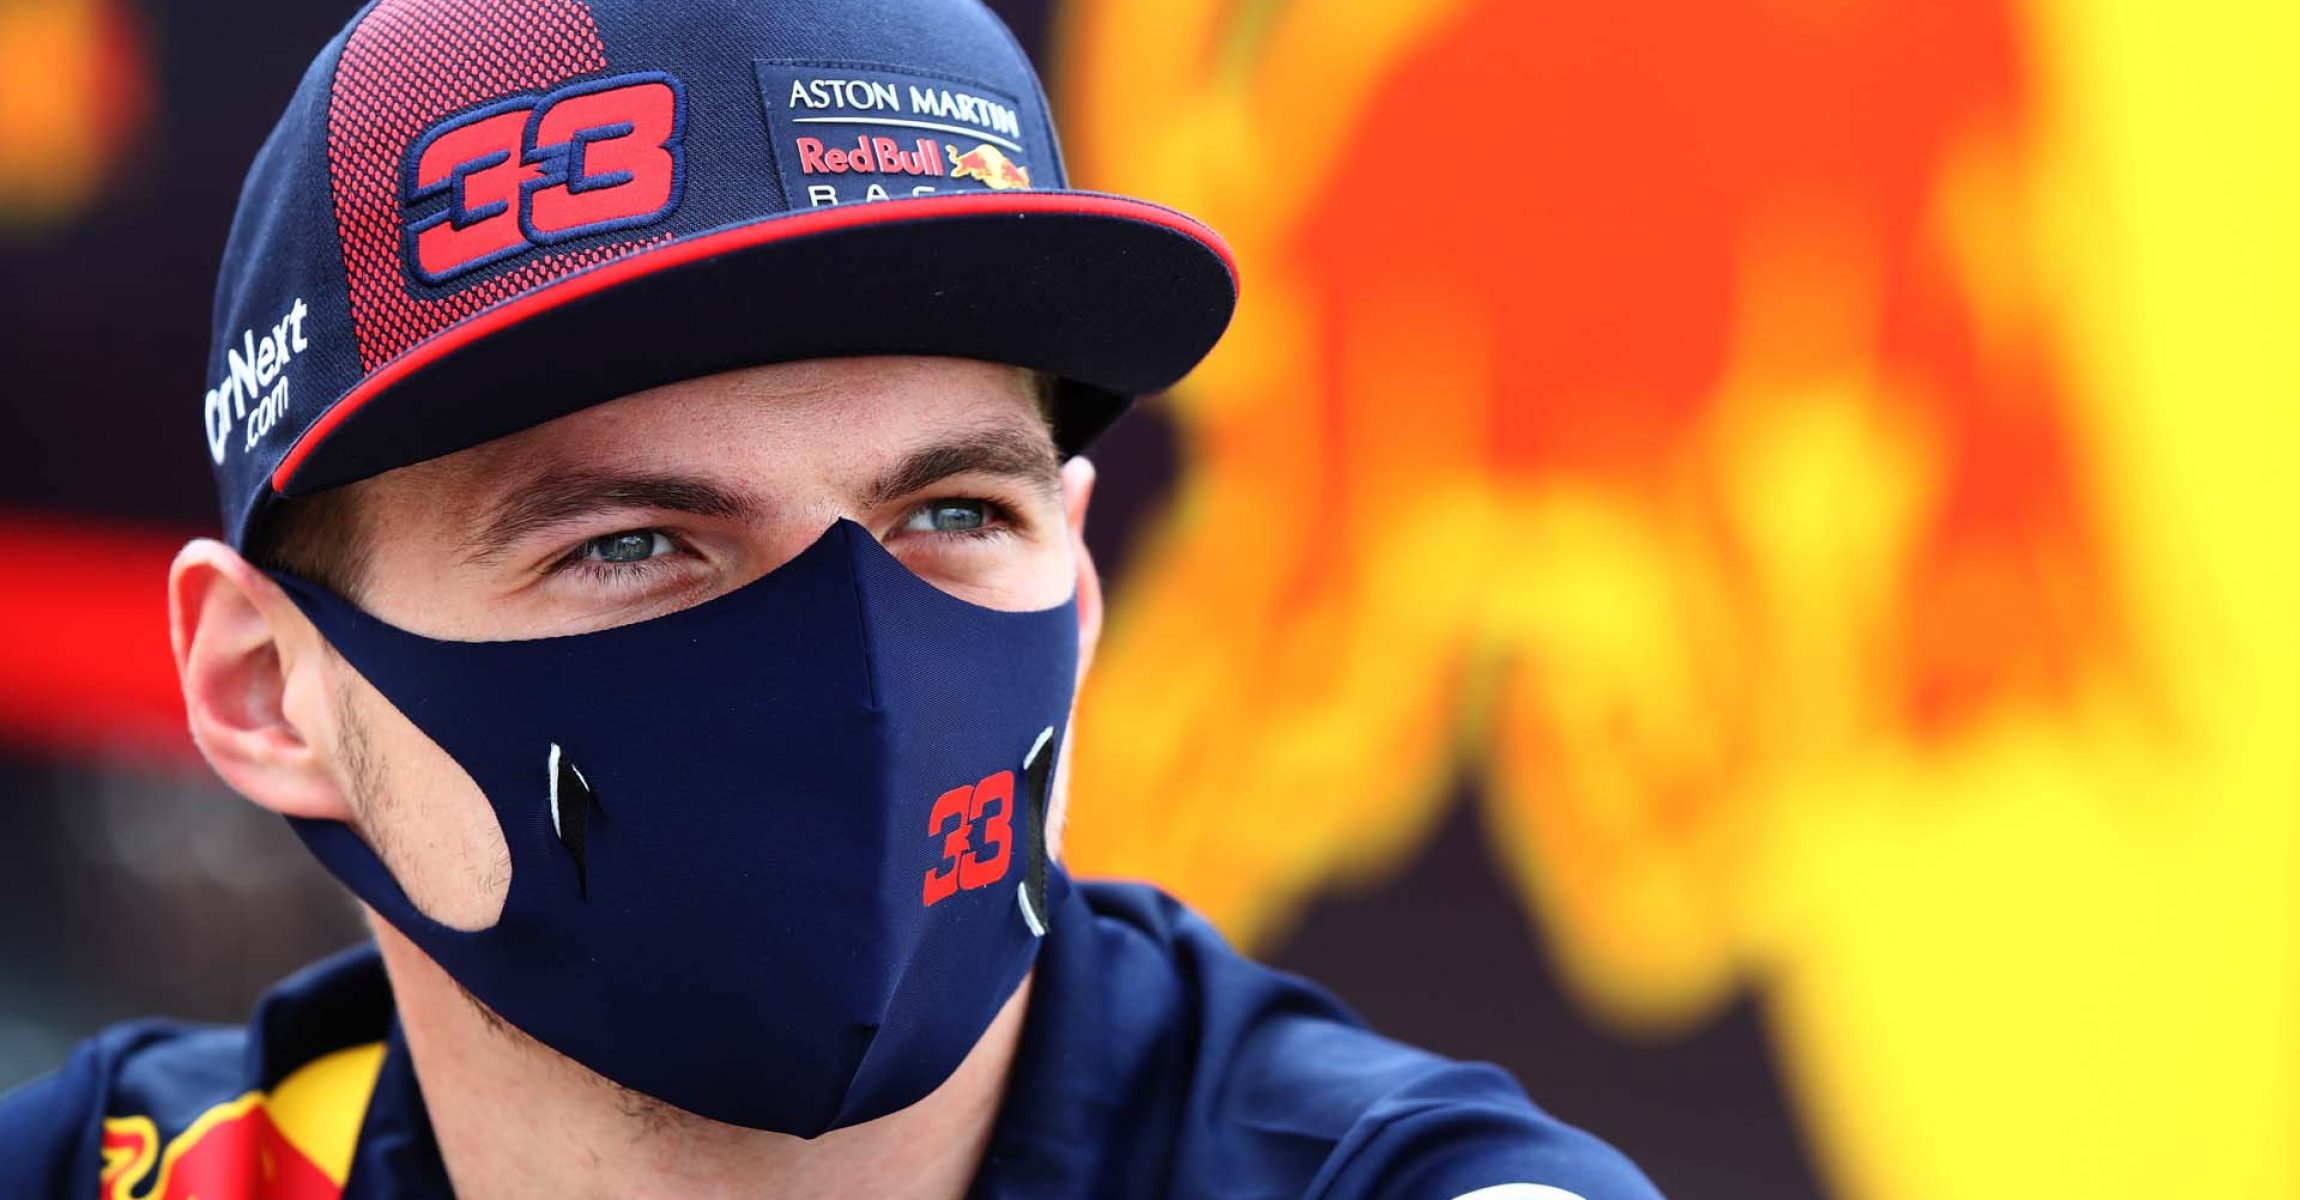 NORTHAMPTON, ENGLAND - AUGUST 06: Max Verstappen of Netherlands and Red Bull Racing looks on in the Paddock during previews ahead of the F1 70th Anniversary Grand Prix at Silverstone on August 06, 2020 in Northampton, England. (Photo by Mark Thompson/Getty Images)